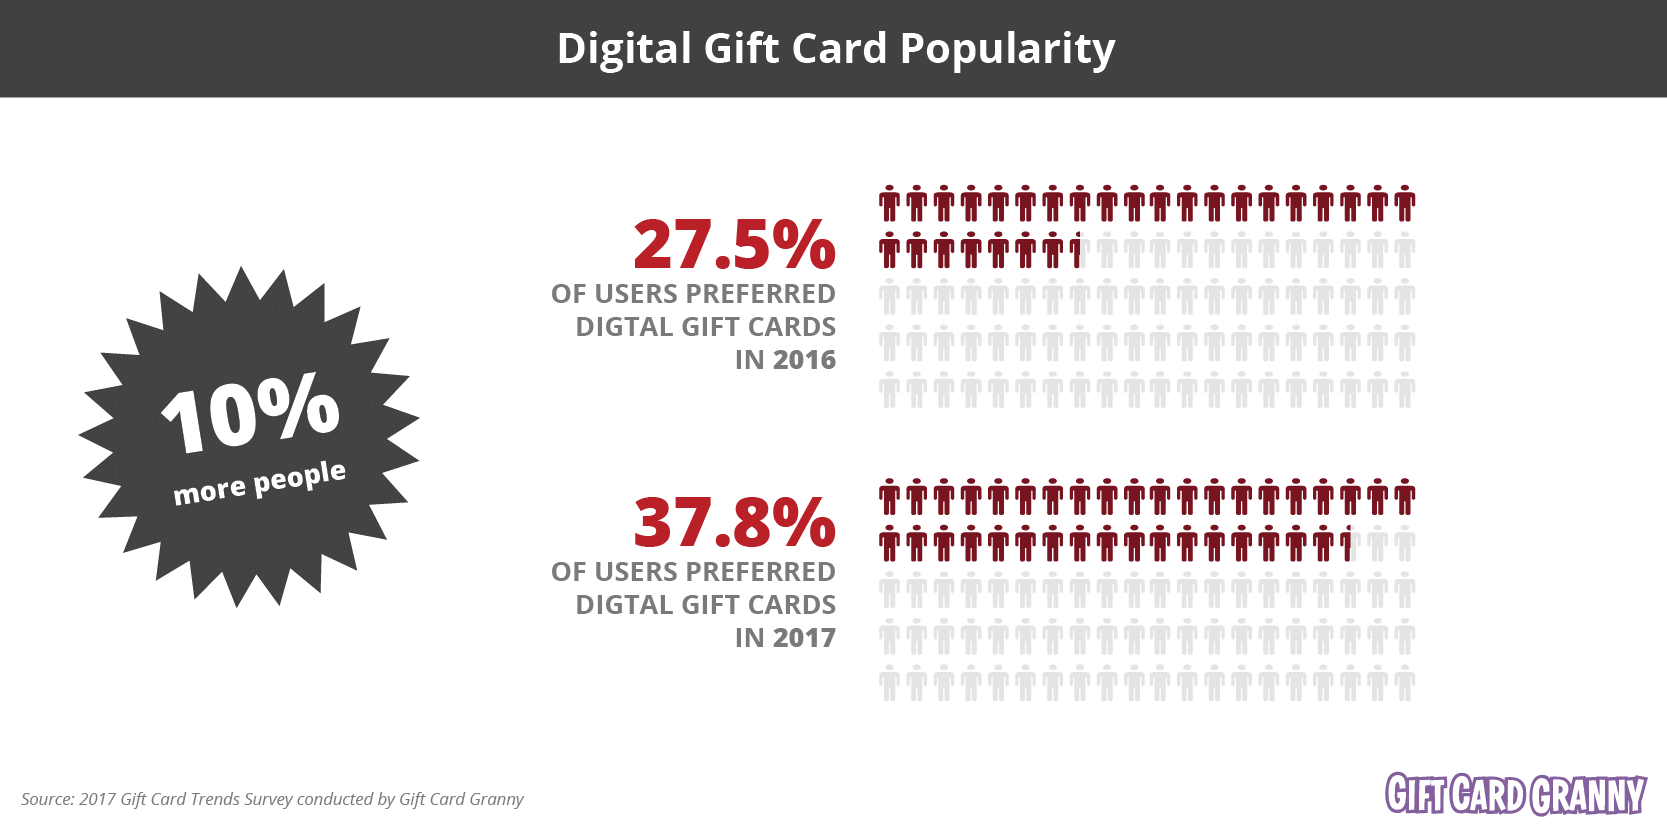 Digital Gift Card Popularity